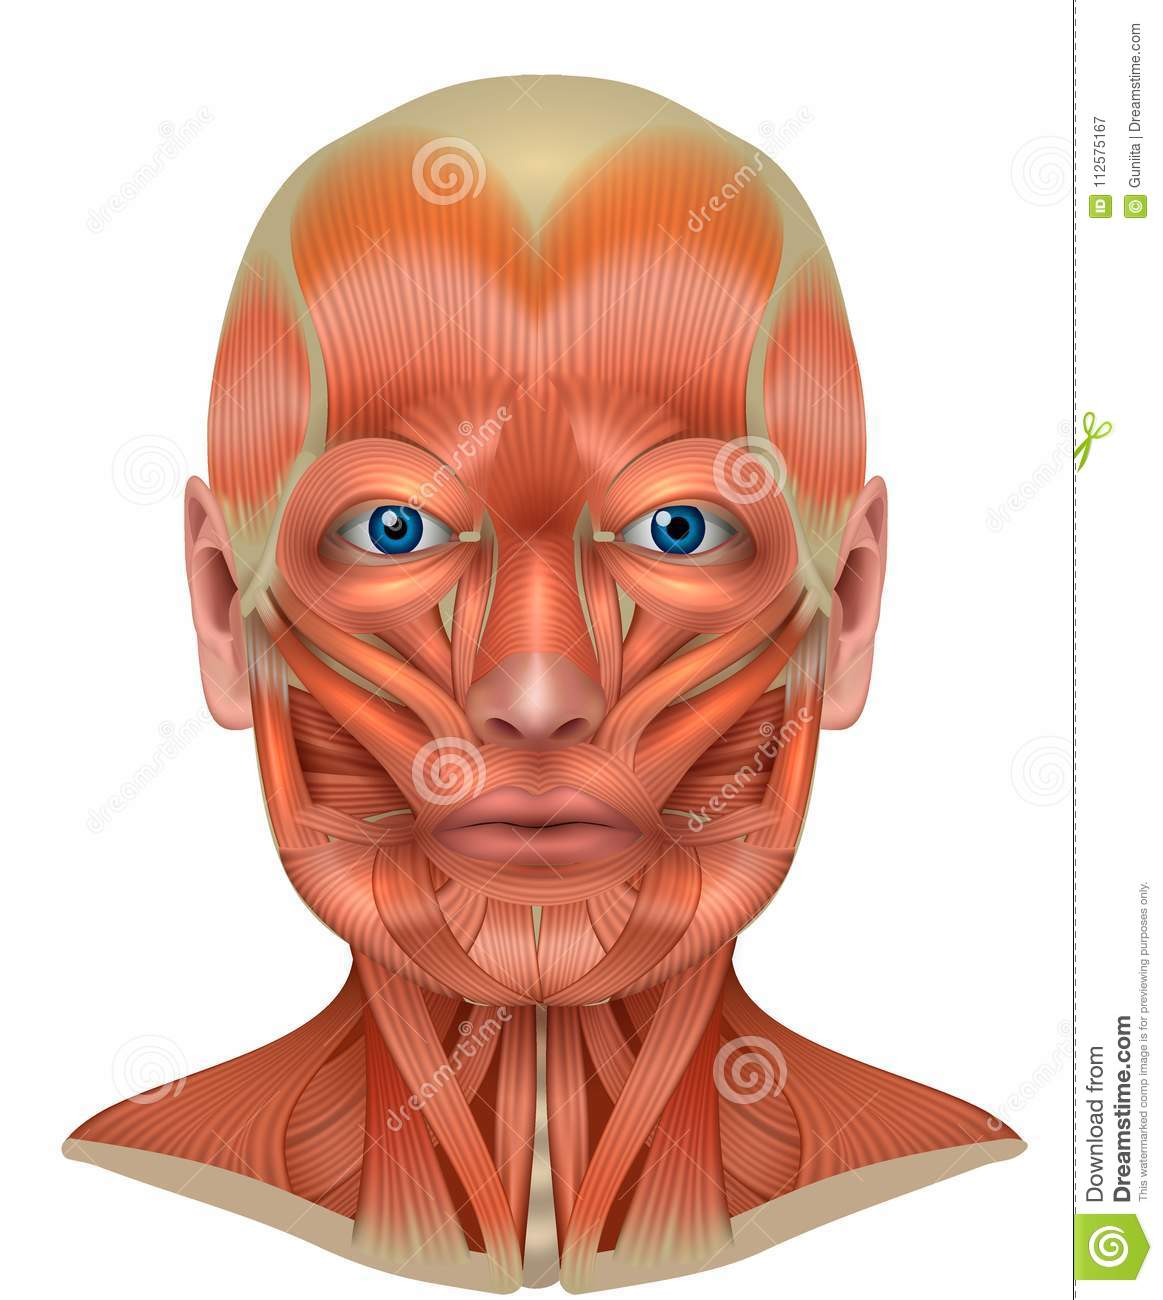 Muscles Of The Face And Neck Stock Vector - Illustration of clip ...